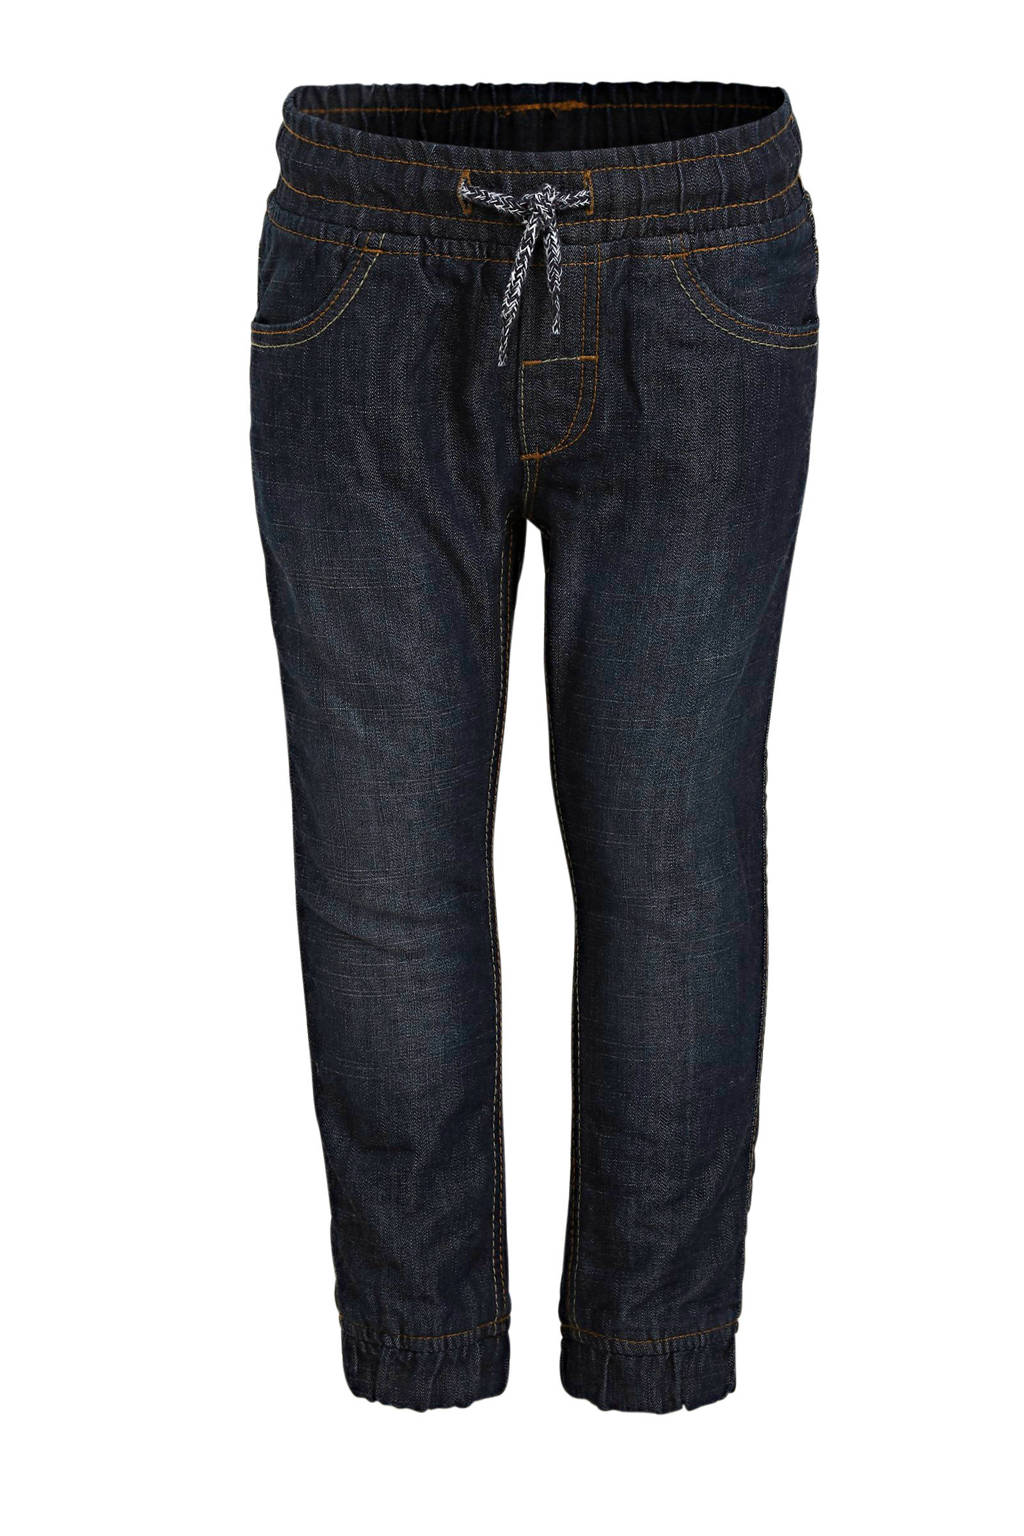 C&A Palomino slim fit jeans donkerblauw, Donkerblauw